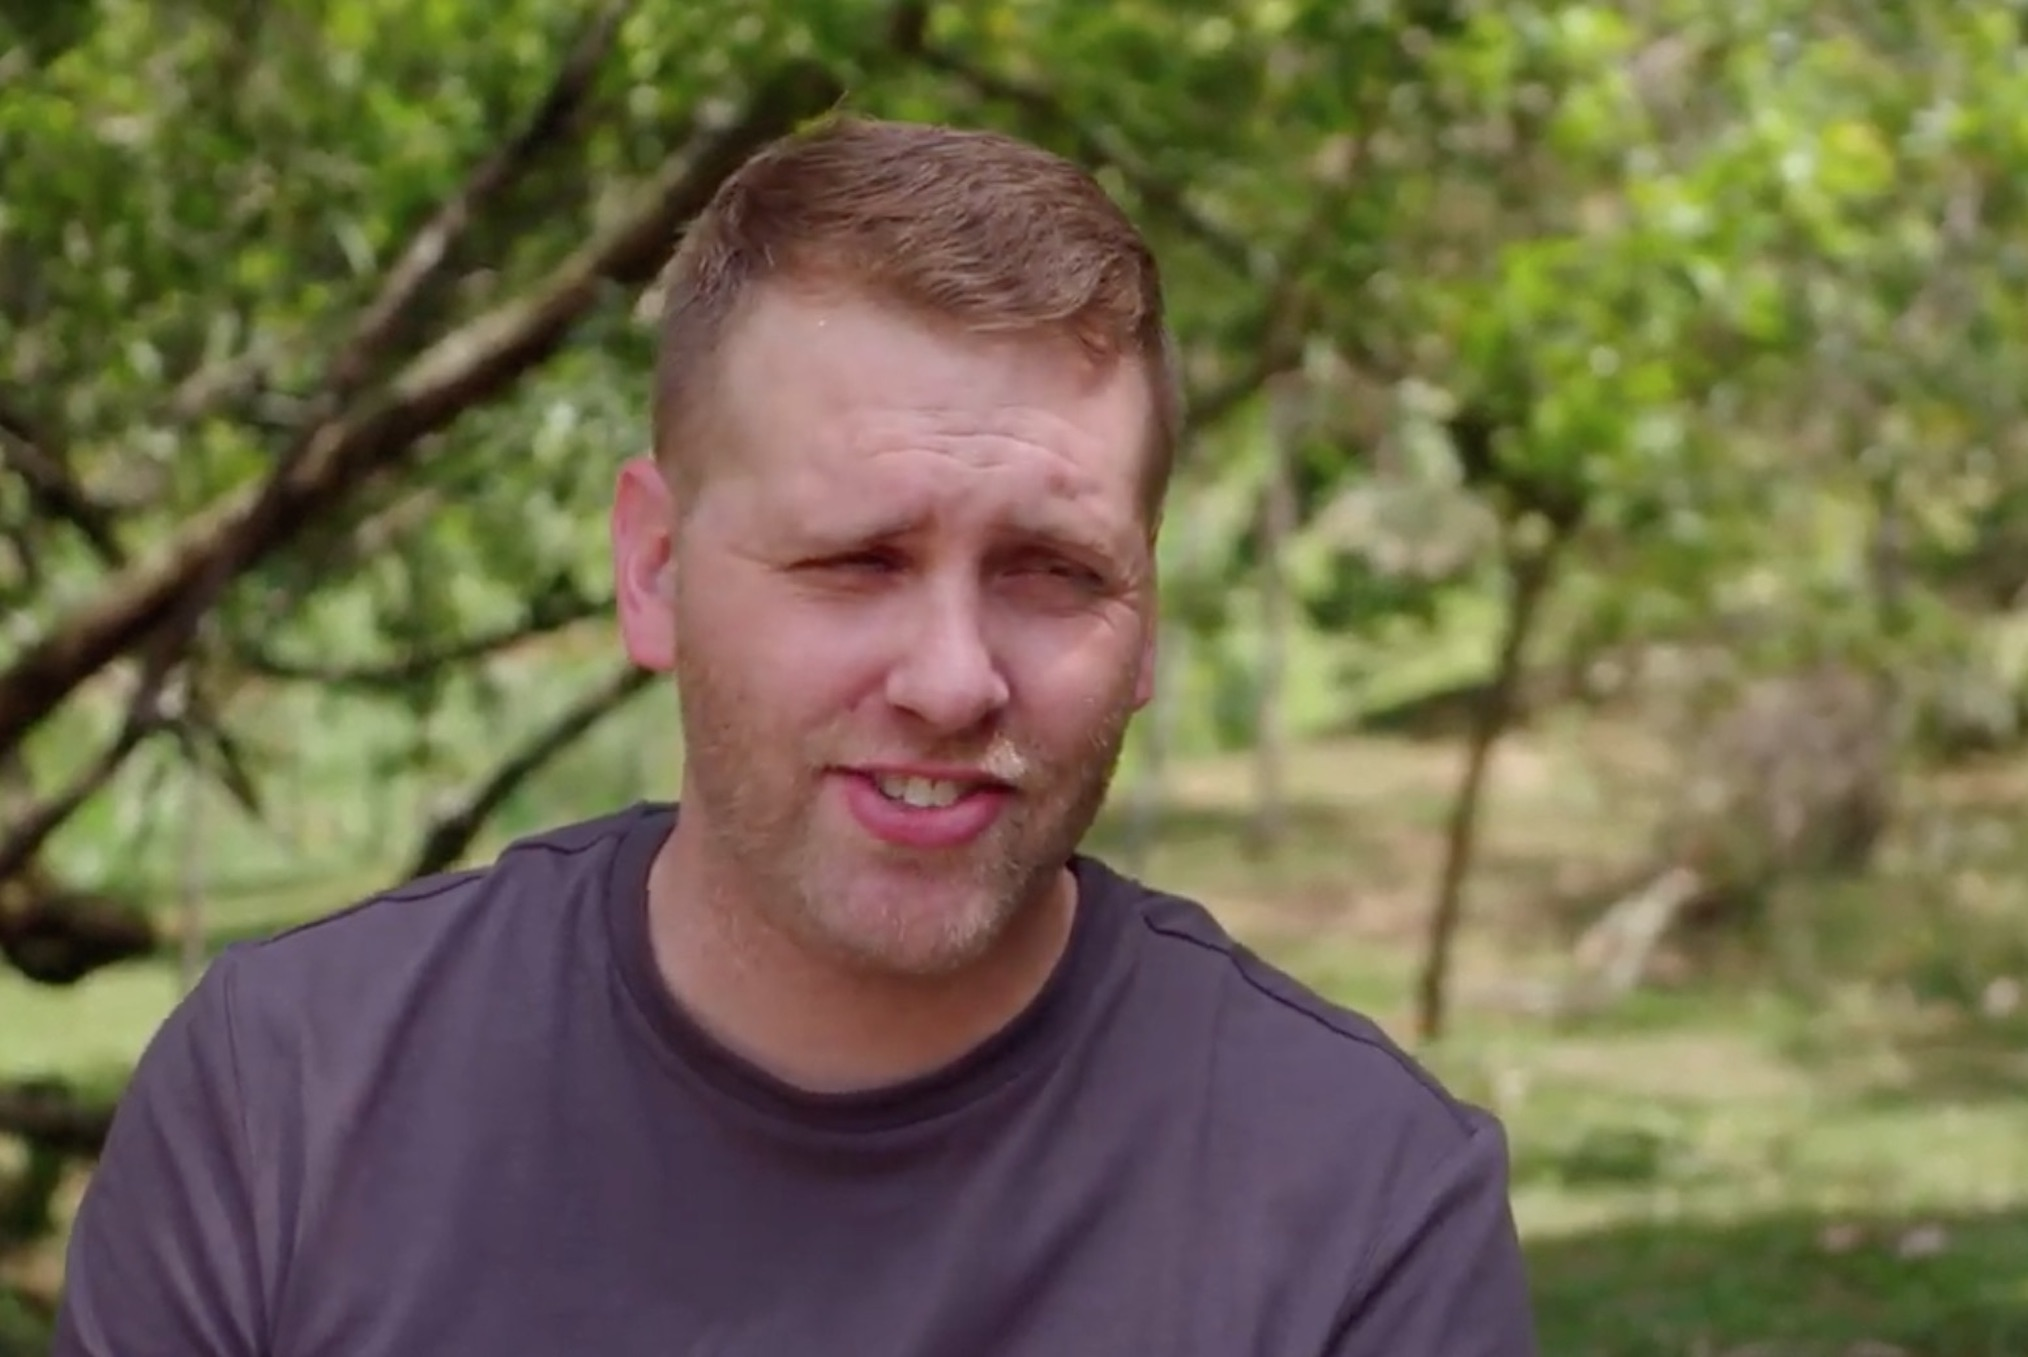 Tim, 90 Day Fiancé: The Other Way